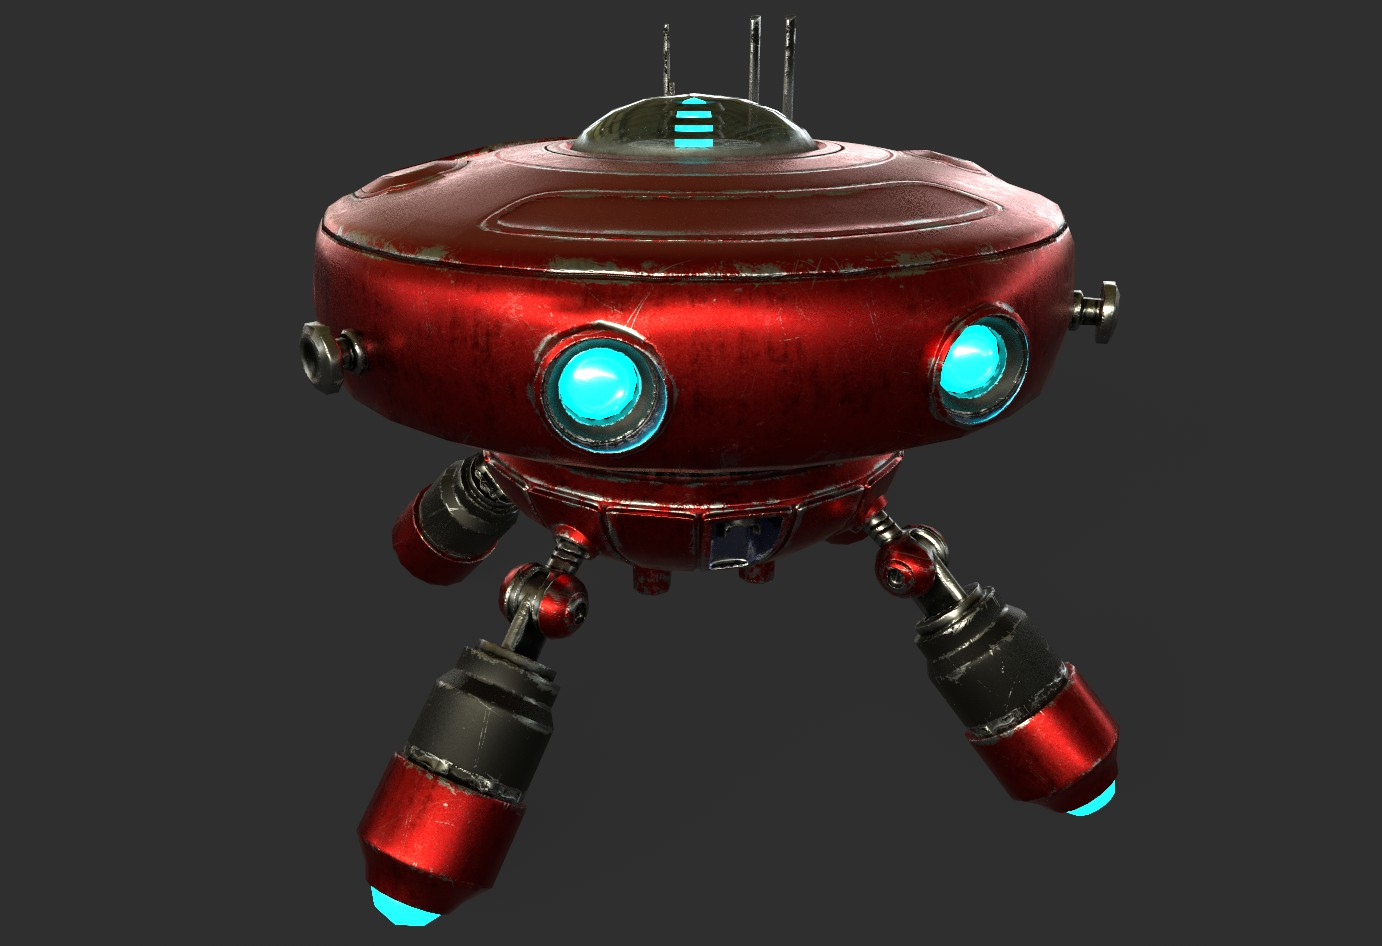 robot boc662 Model 3d 3ds max 3ds project fbx obj 293431